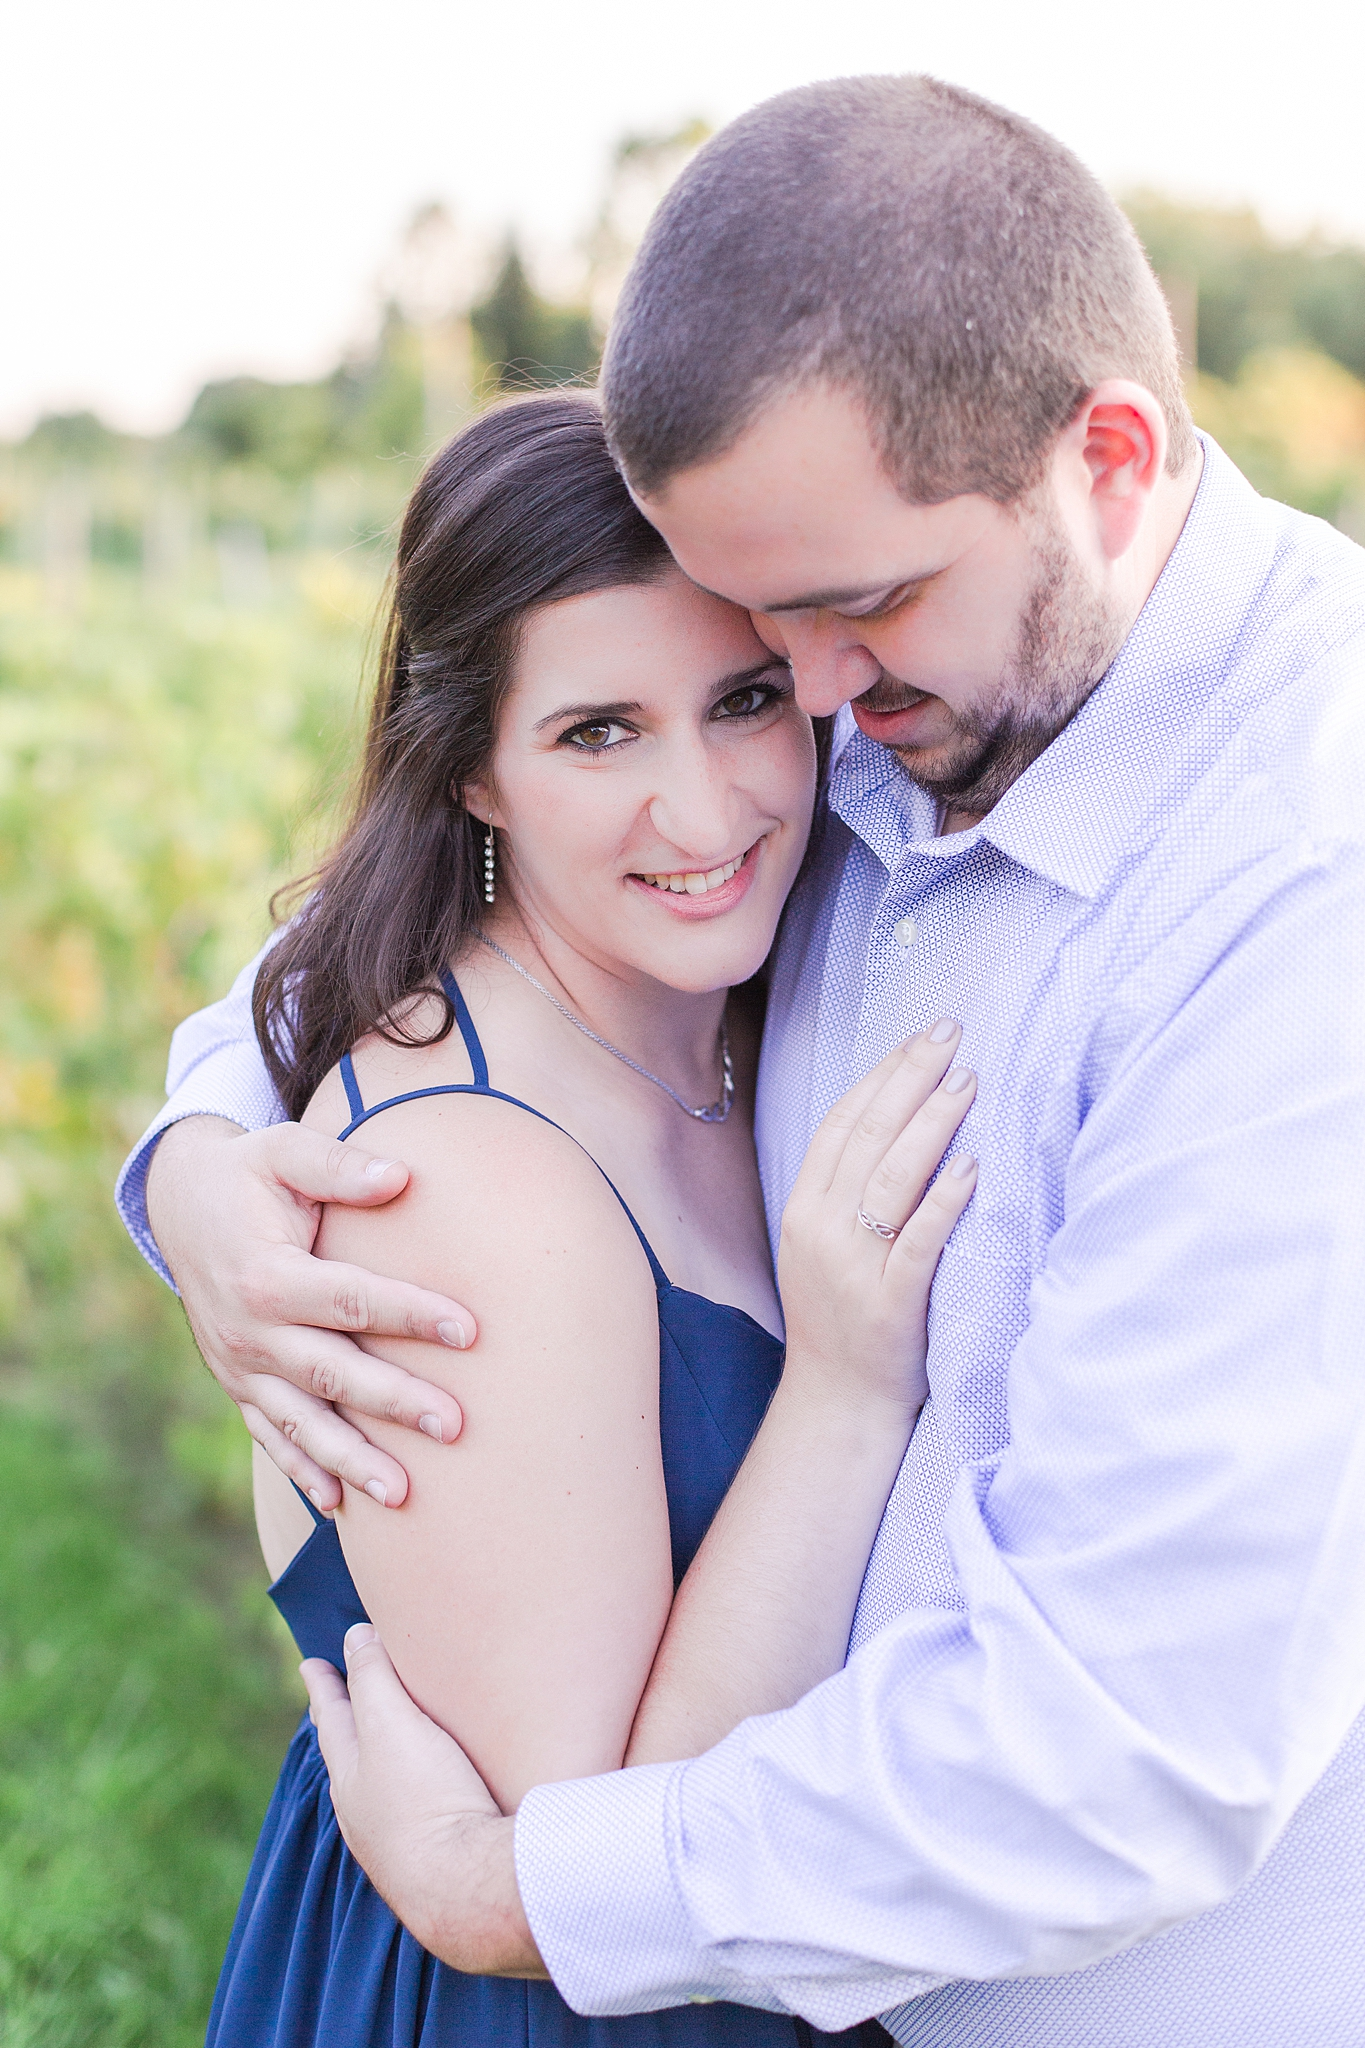 classic-vineyard-engagement-photography-in-lansing-mi-by-courtney-carolyn-photography_0001.jpg